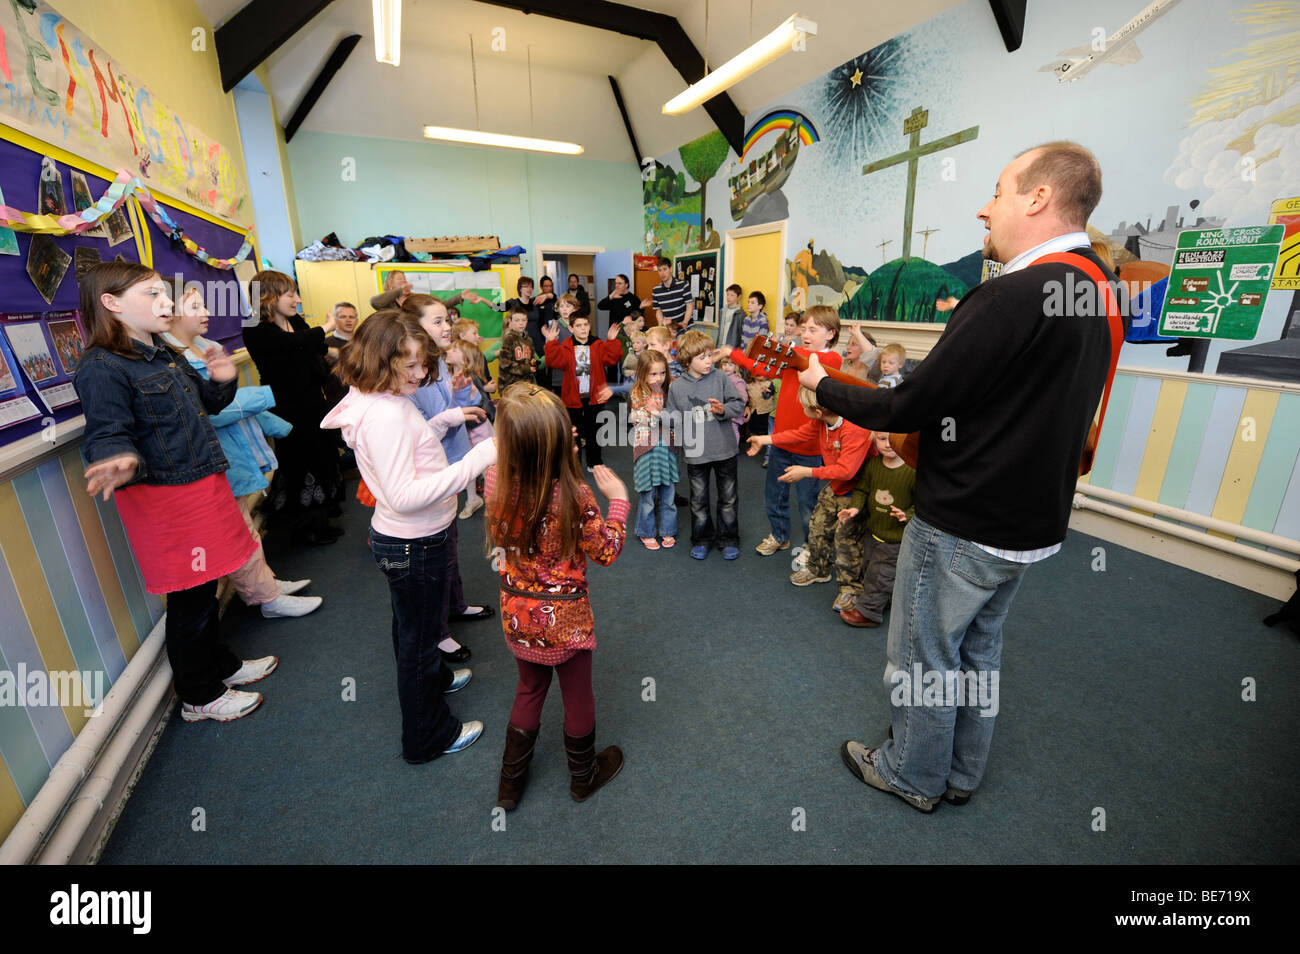 CHILDREN SINGING IN A GROUP AT A SUNDAY SCHOOL UK - Stock Image